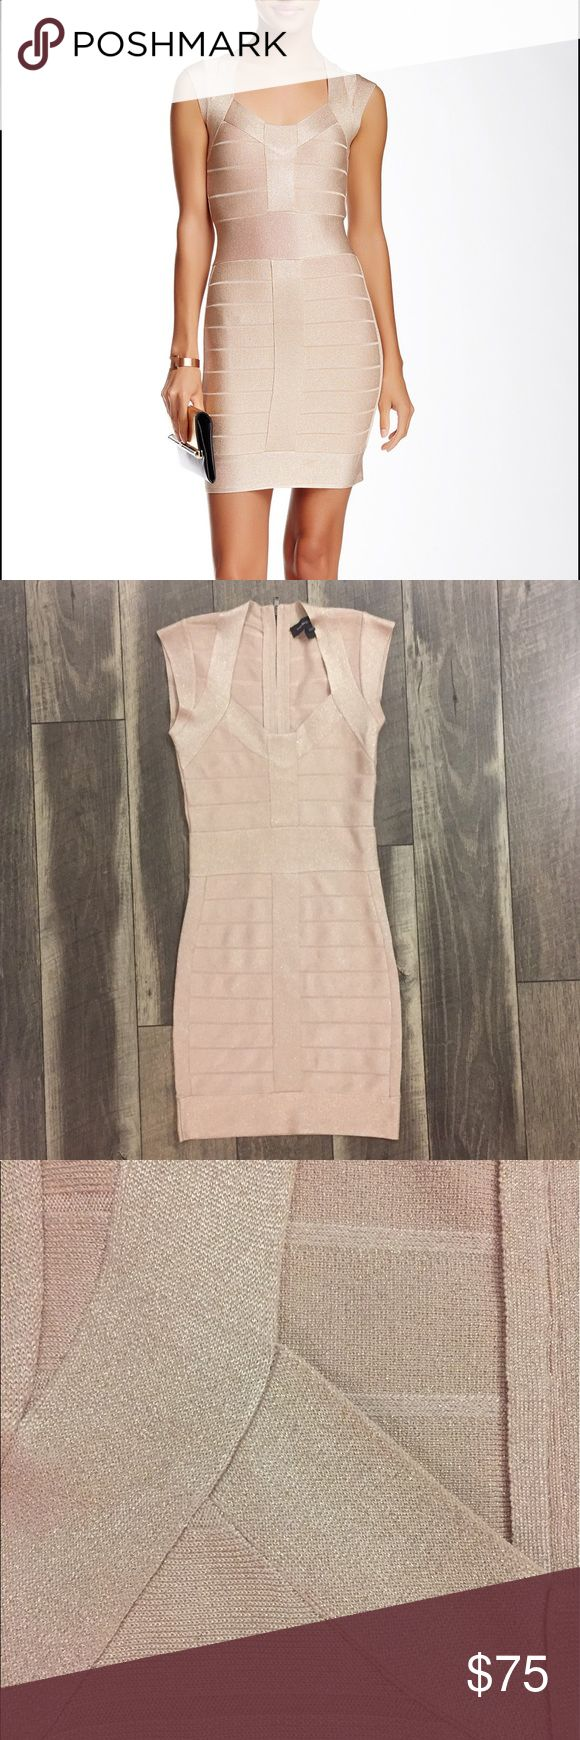 French Connection Bodycon Dress Beautiful soft rose gold bodycon dress - worn once - perfect condition - extremely flattering! French Connection Dresses Mini